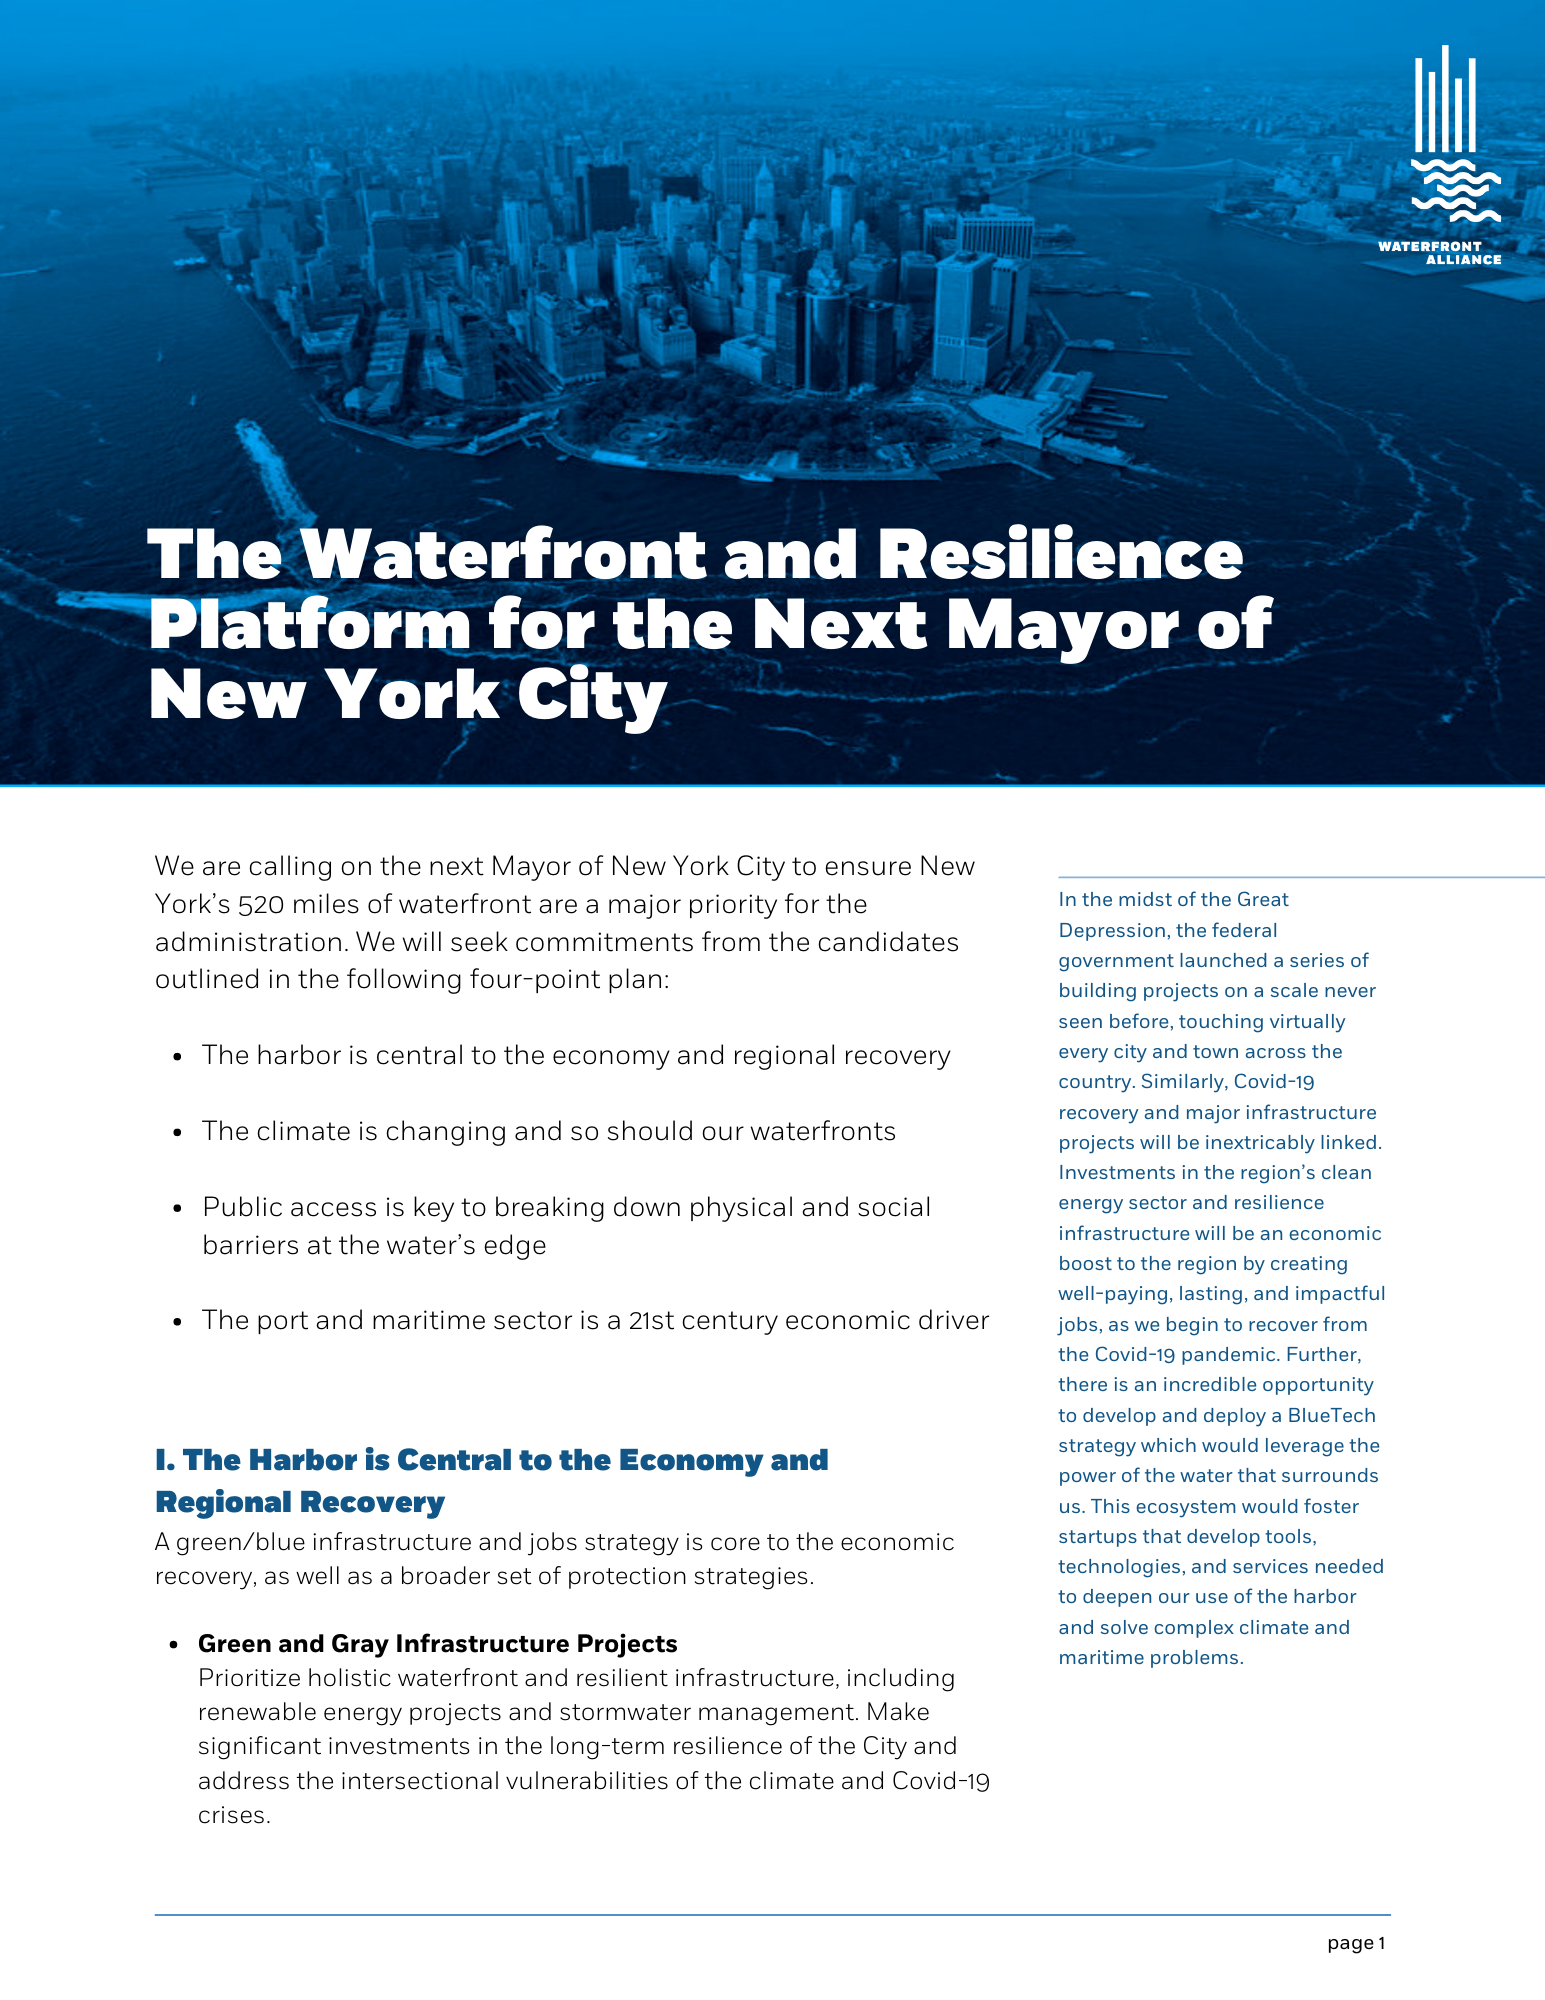 The Waterfront and Resilience Platform for the Next Mayor of New York City